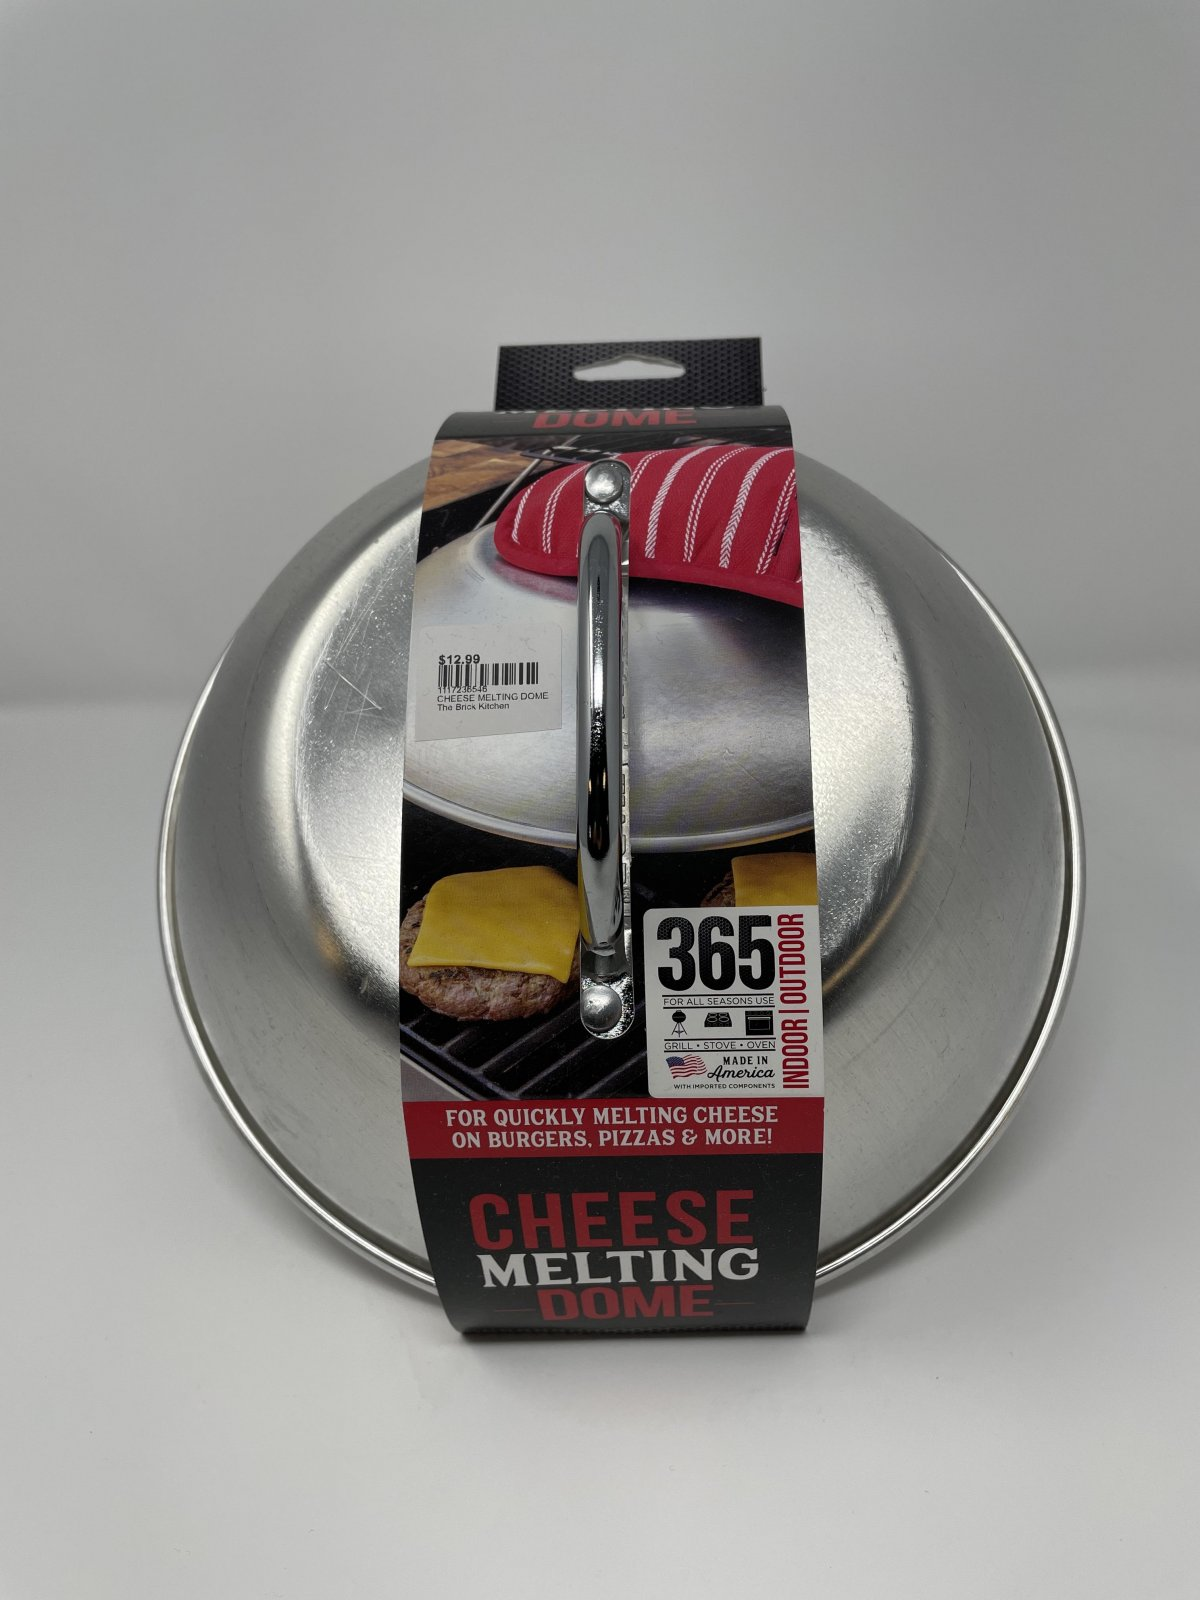 CHEESE MELTING DOME